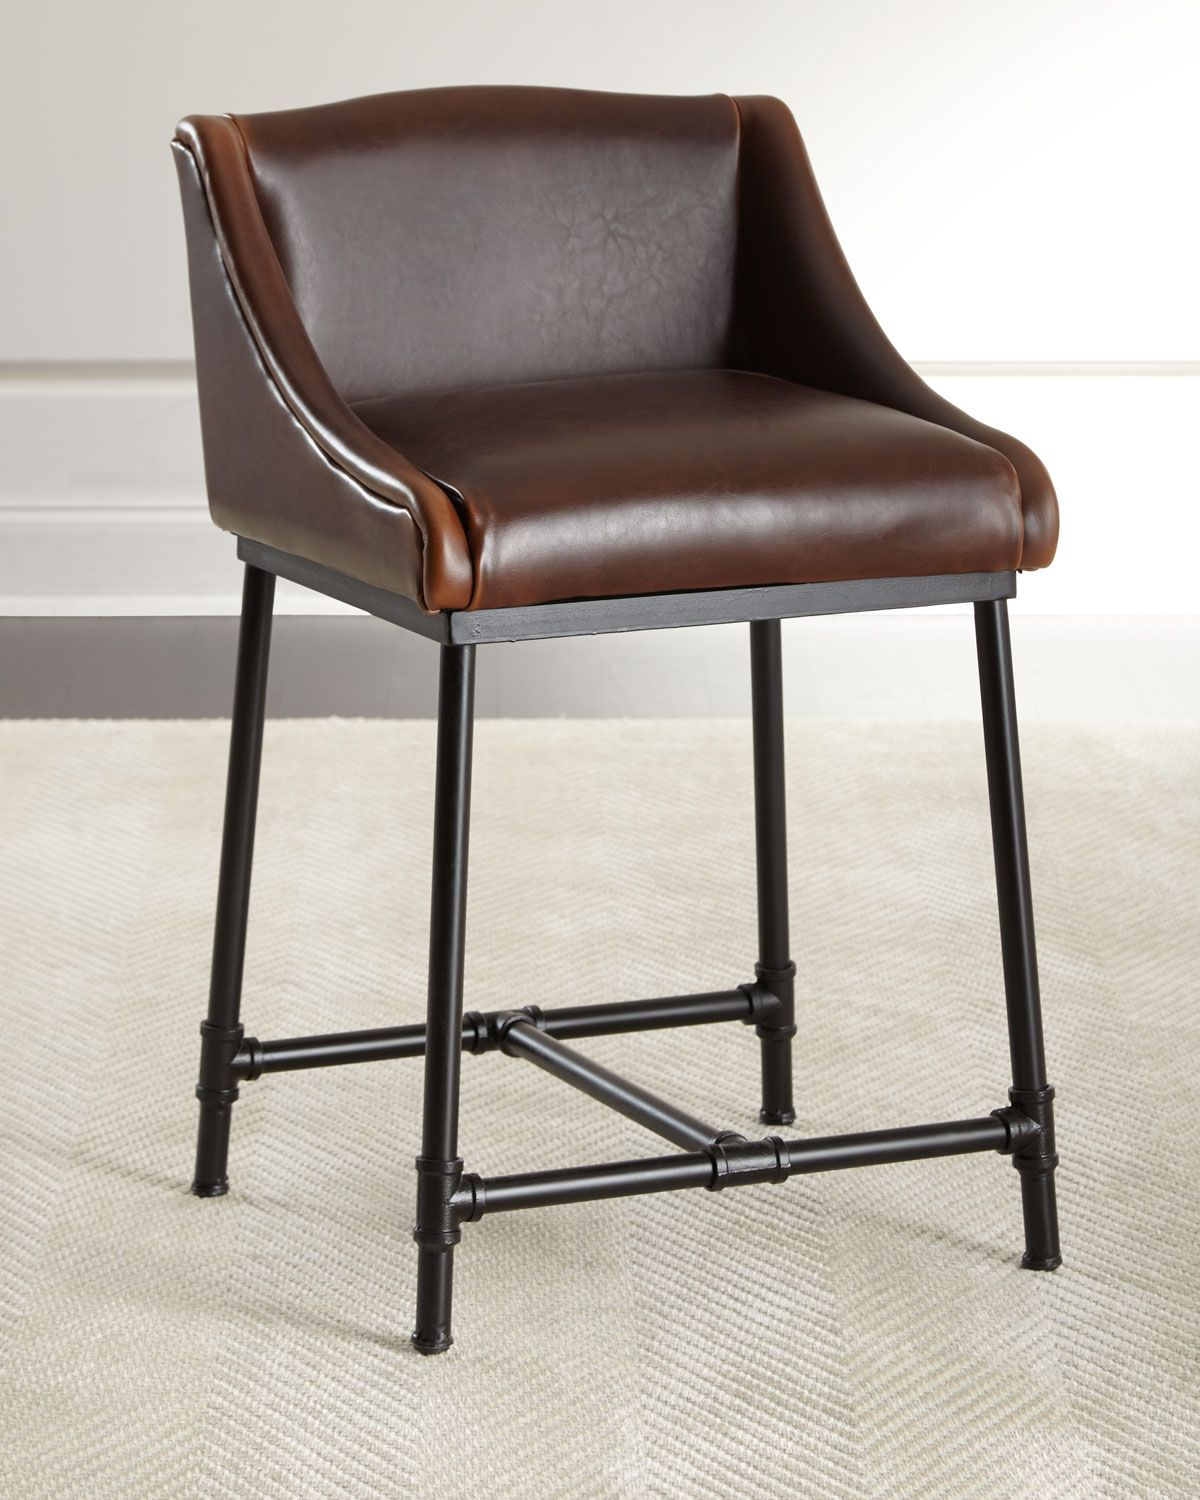 Peachy Fairfield Leather Counter Stool Horchow Leather Evergreenethics Interior Chair Design Evergreenethicsorg